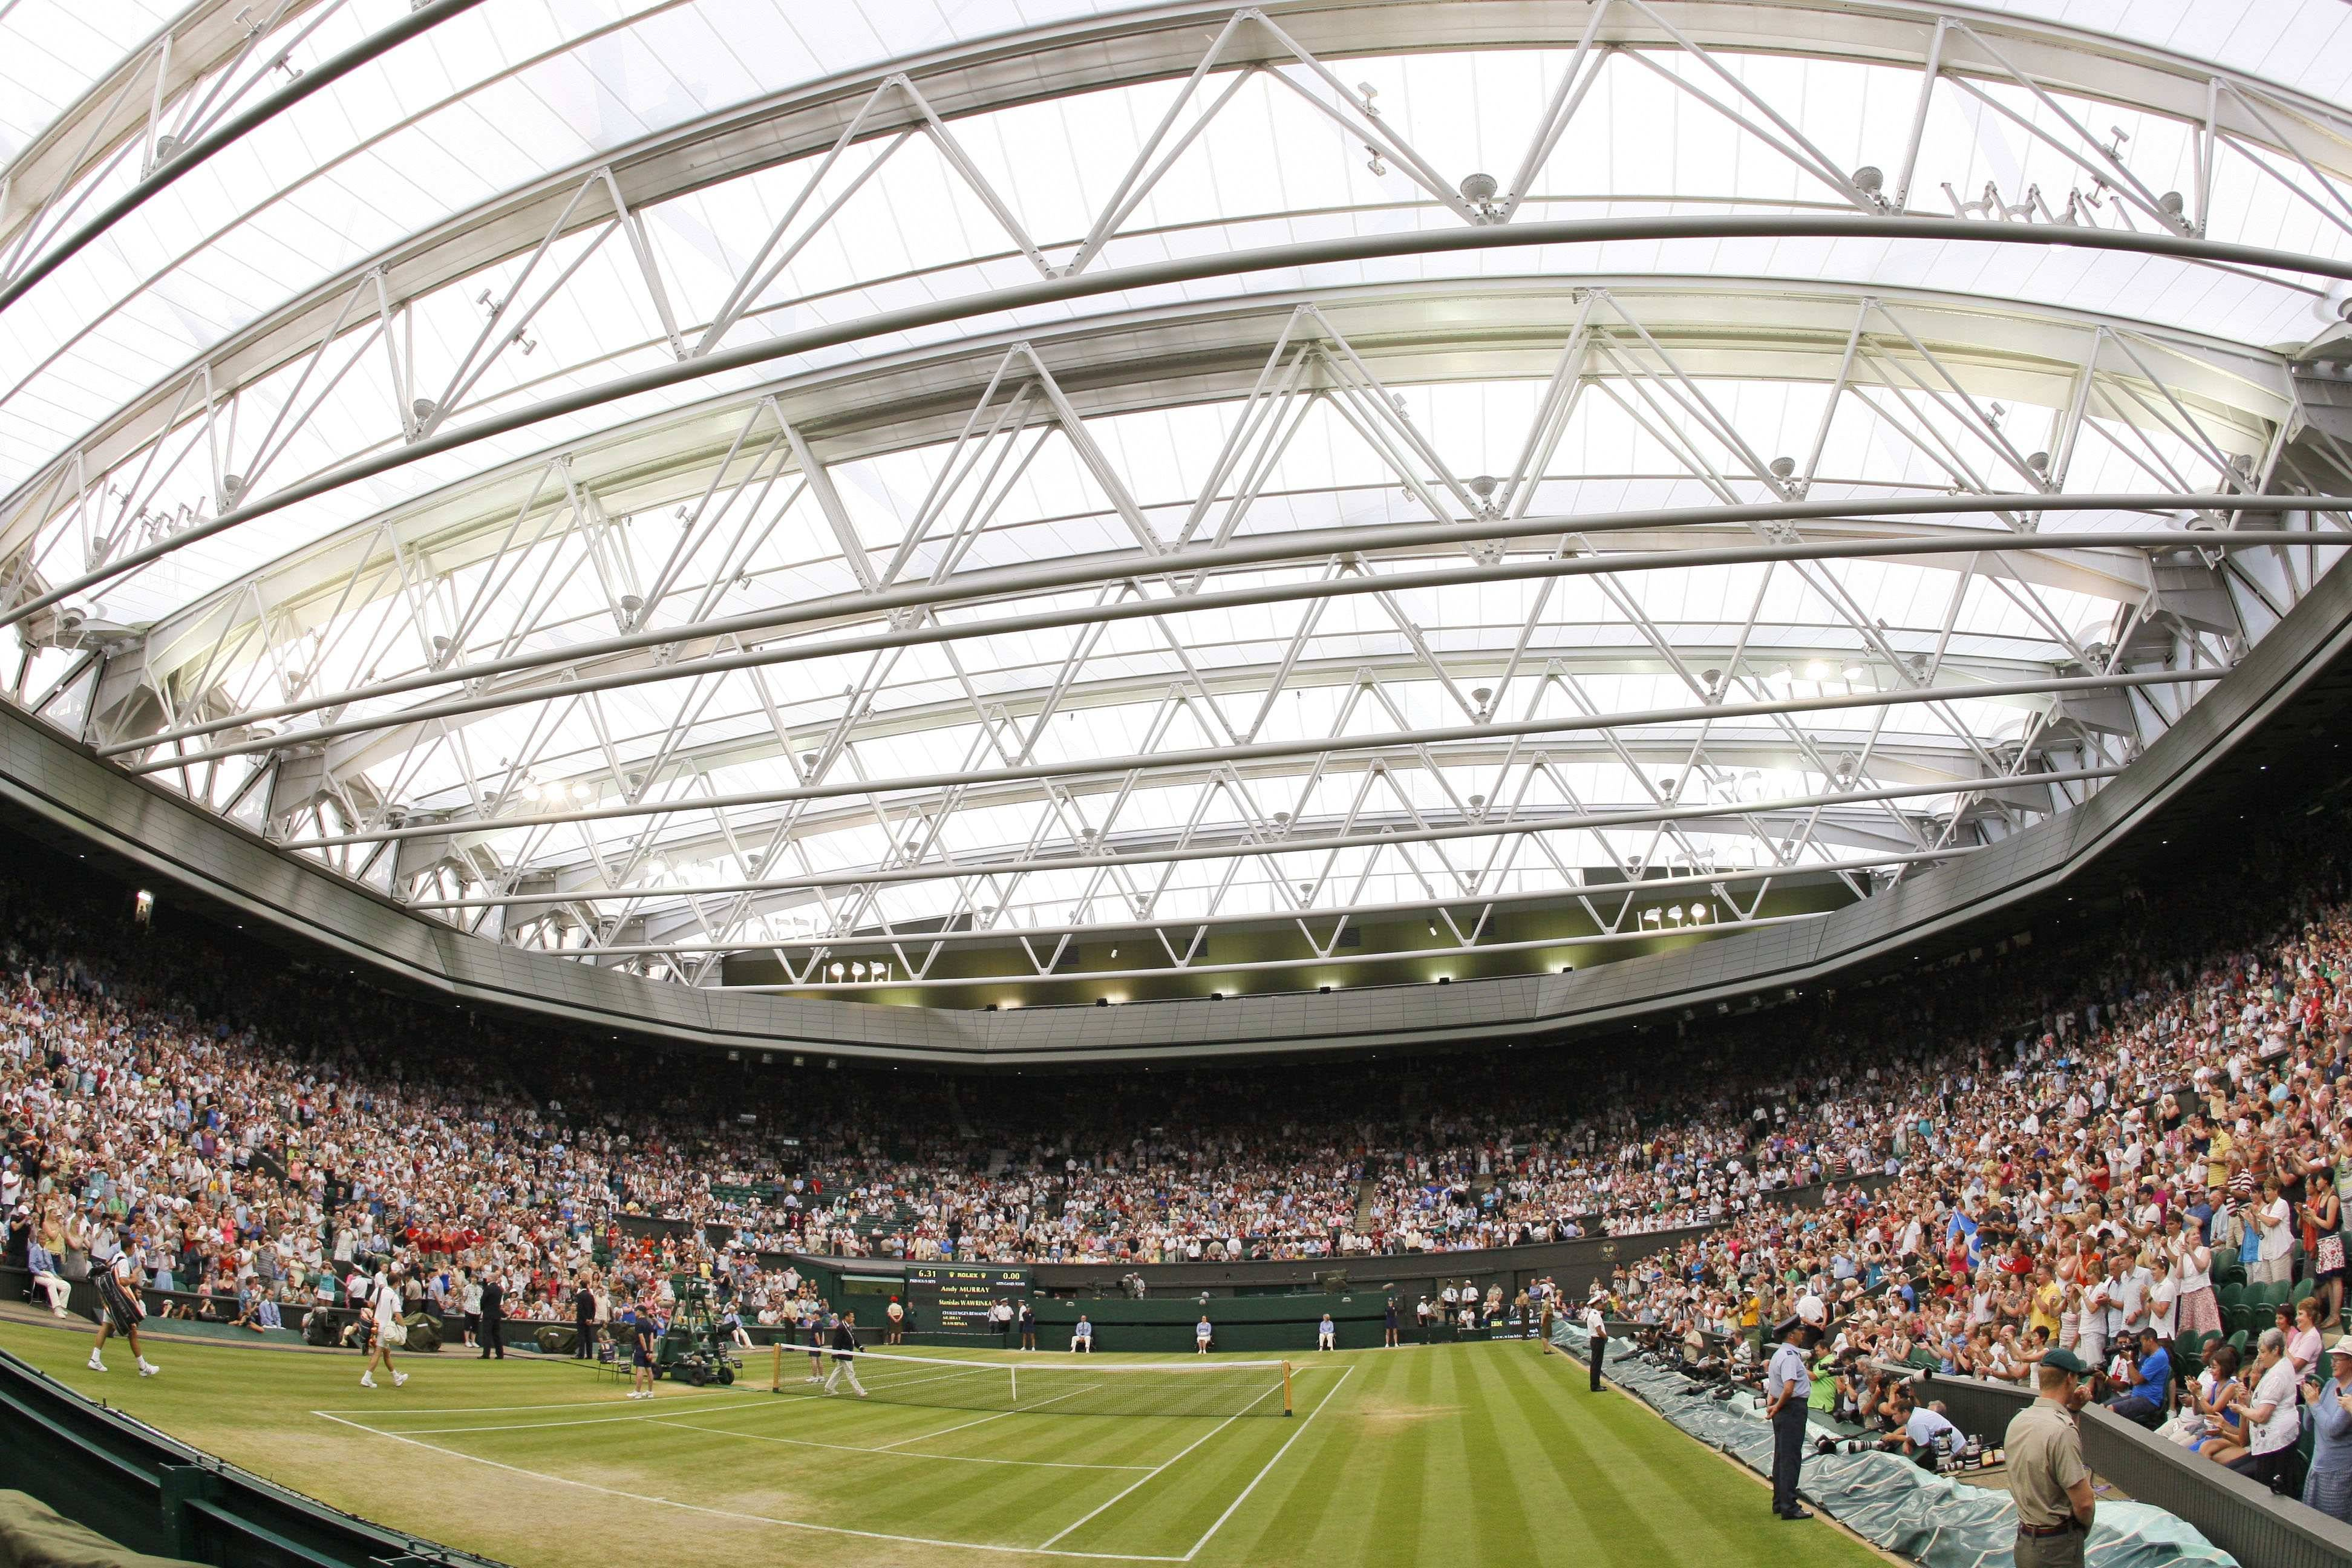 Swings in betting odds suggest an average of 23 professional tennis matches might be fixed each year, according to a study that found suspicious patterns in three matches at Wimbledon.